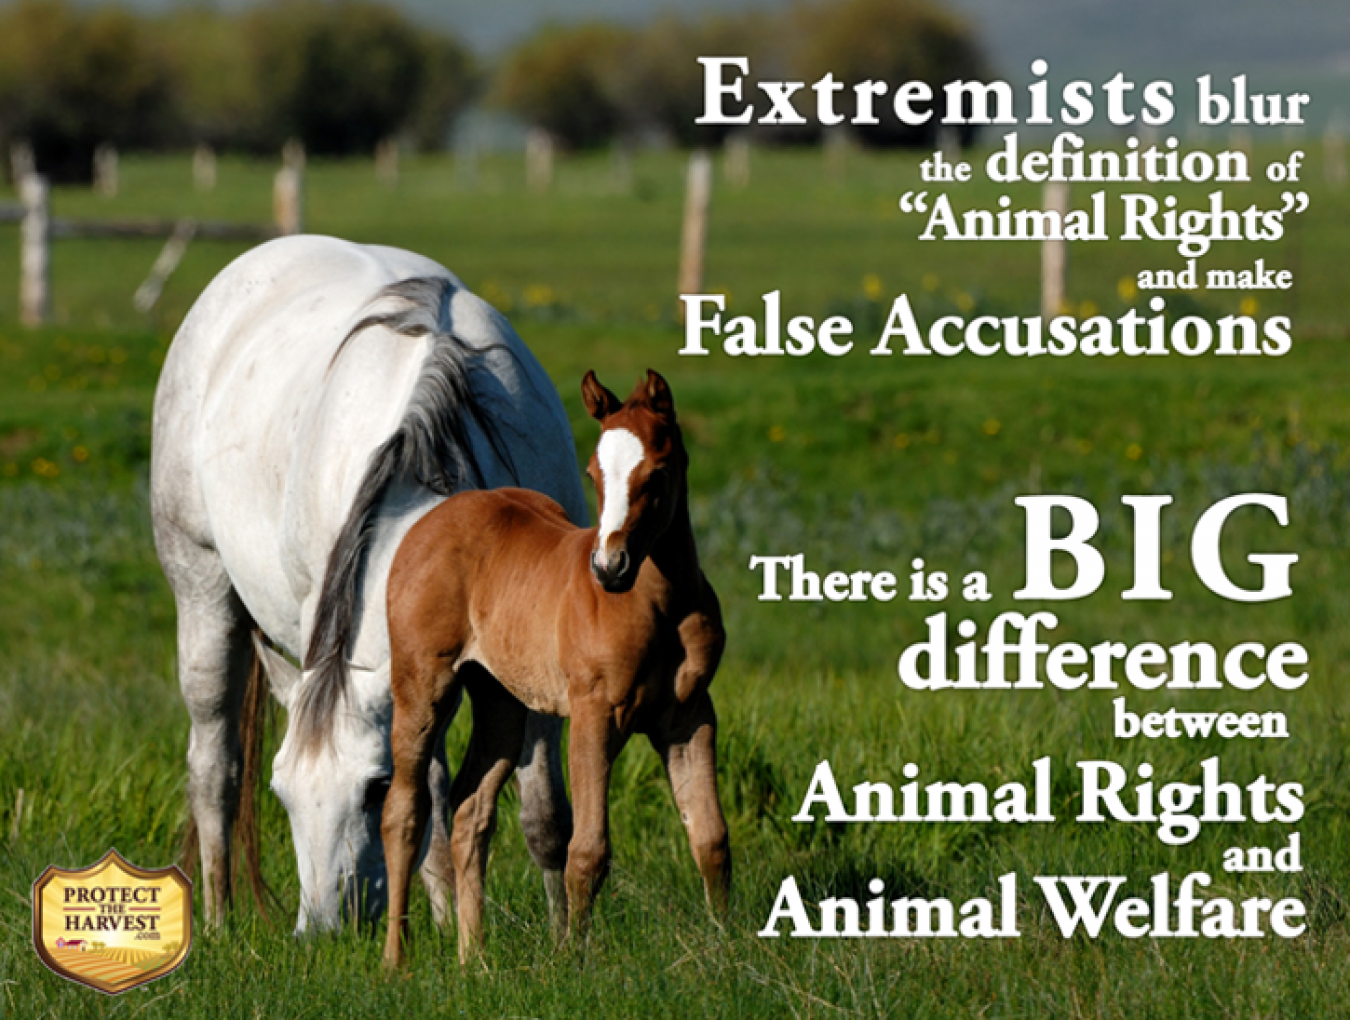 Animal Rights and Animal Welfare - Know The Difference